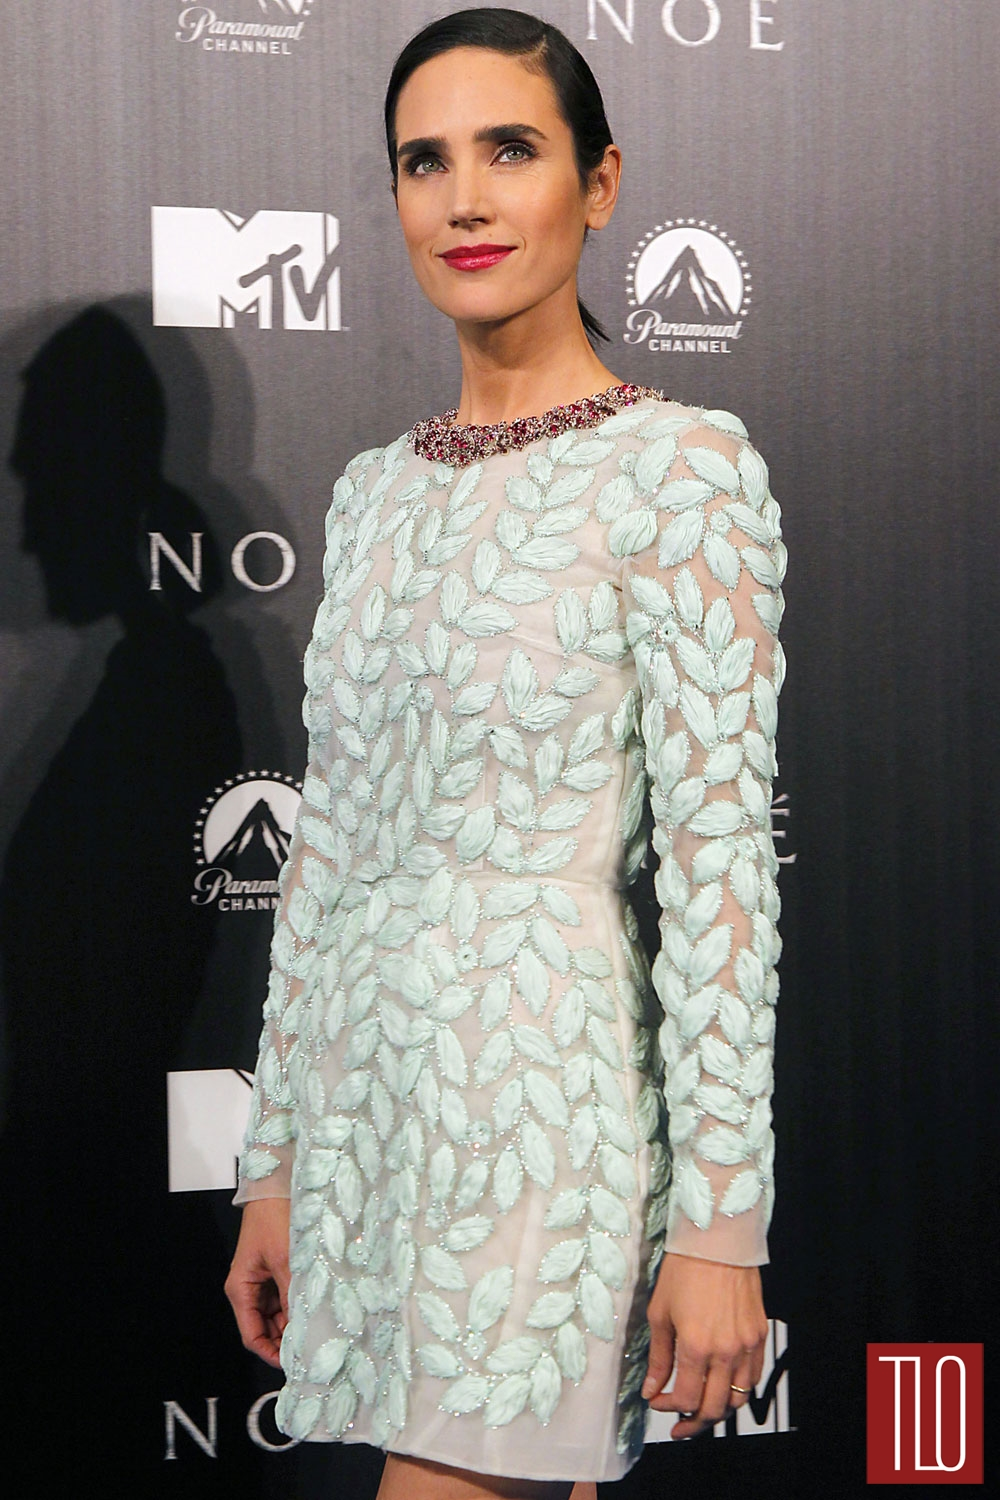 Jennifer-Connelly-Giambattista-Valli-Couture-Noah-Madrid-Premiere-Tom-Lorenzo-Site-TLO (1)